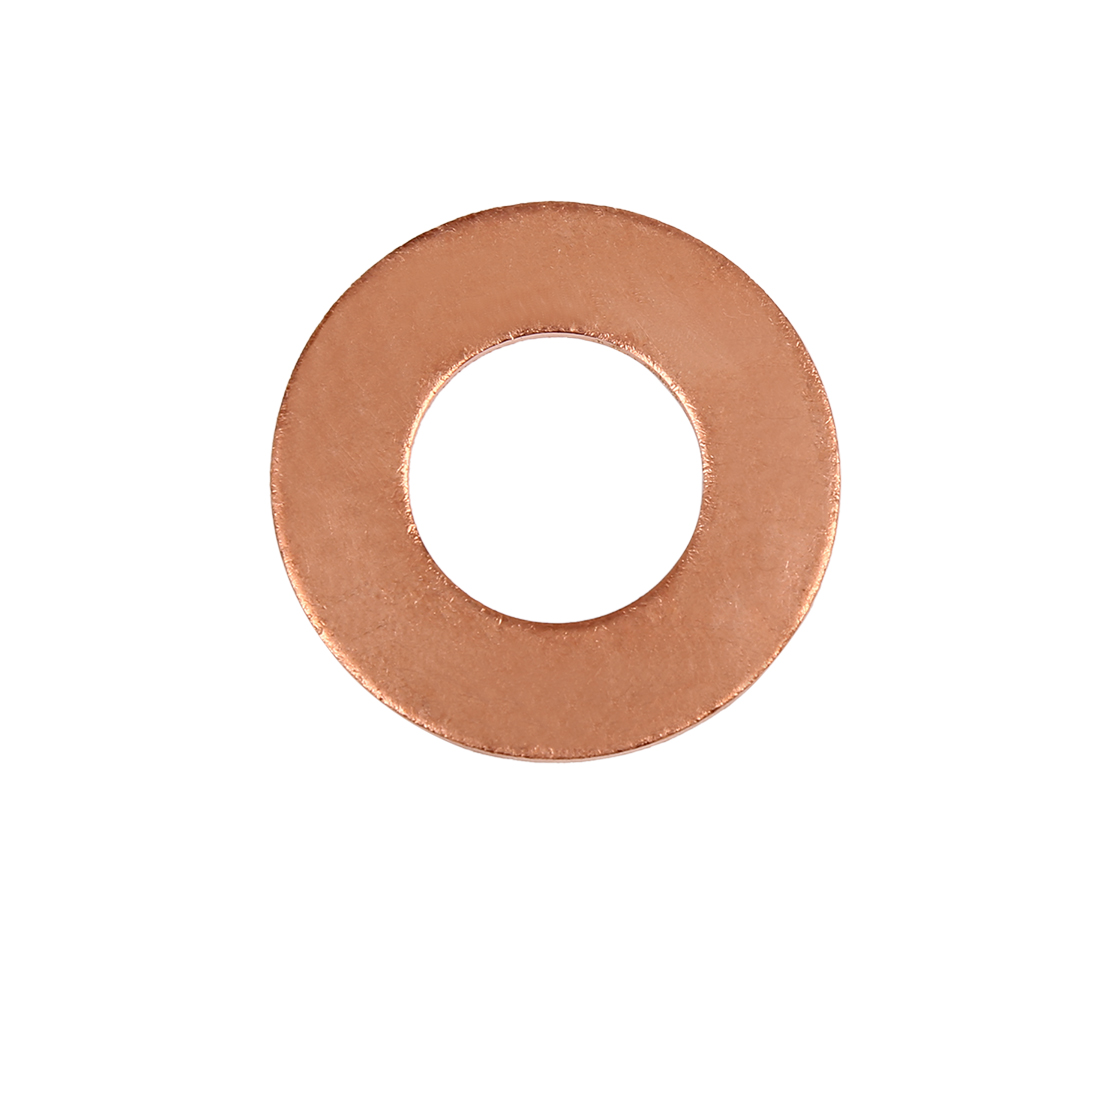 Copper Washer Flat Sealing Gasket Ring Spacer Fitting for Car 18 x 35 x 1.5mm